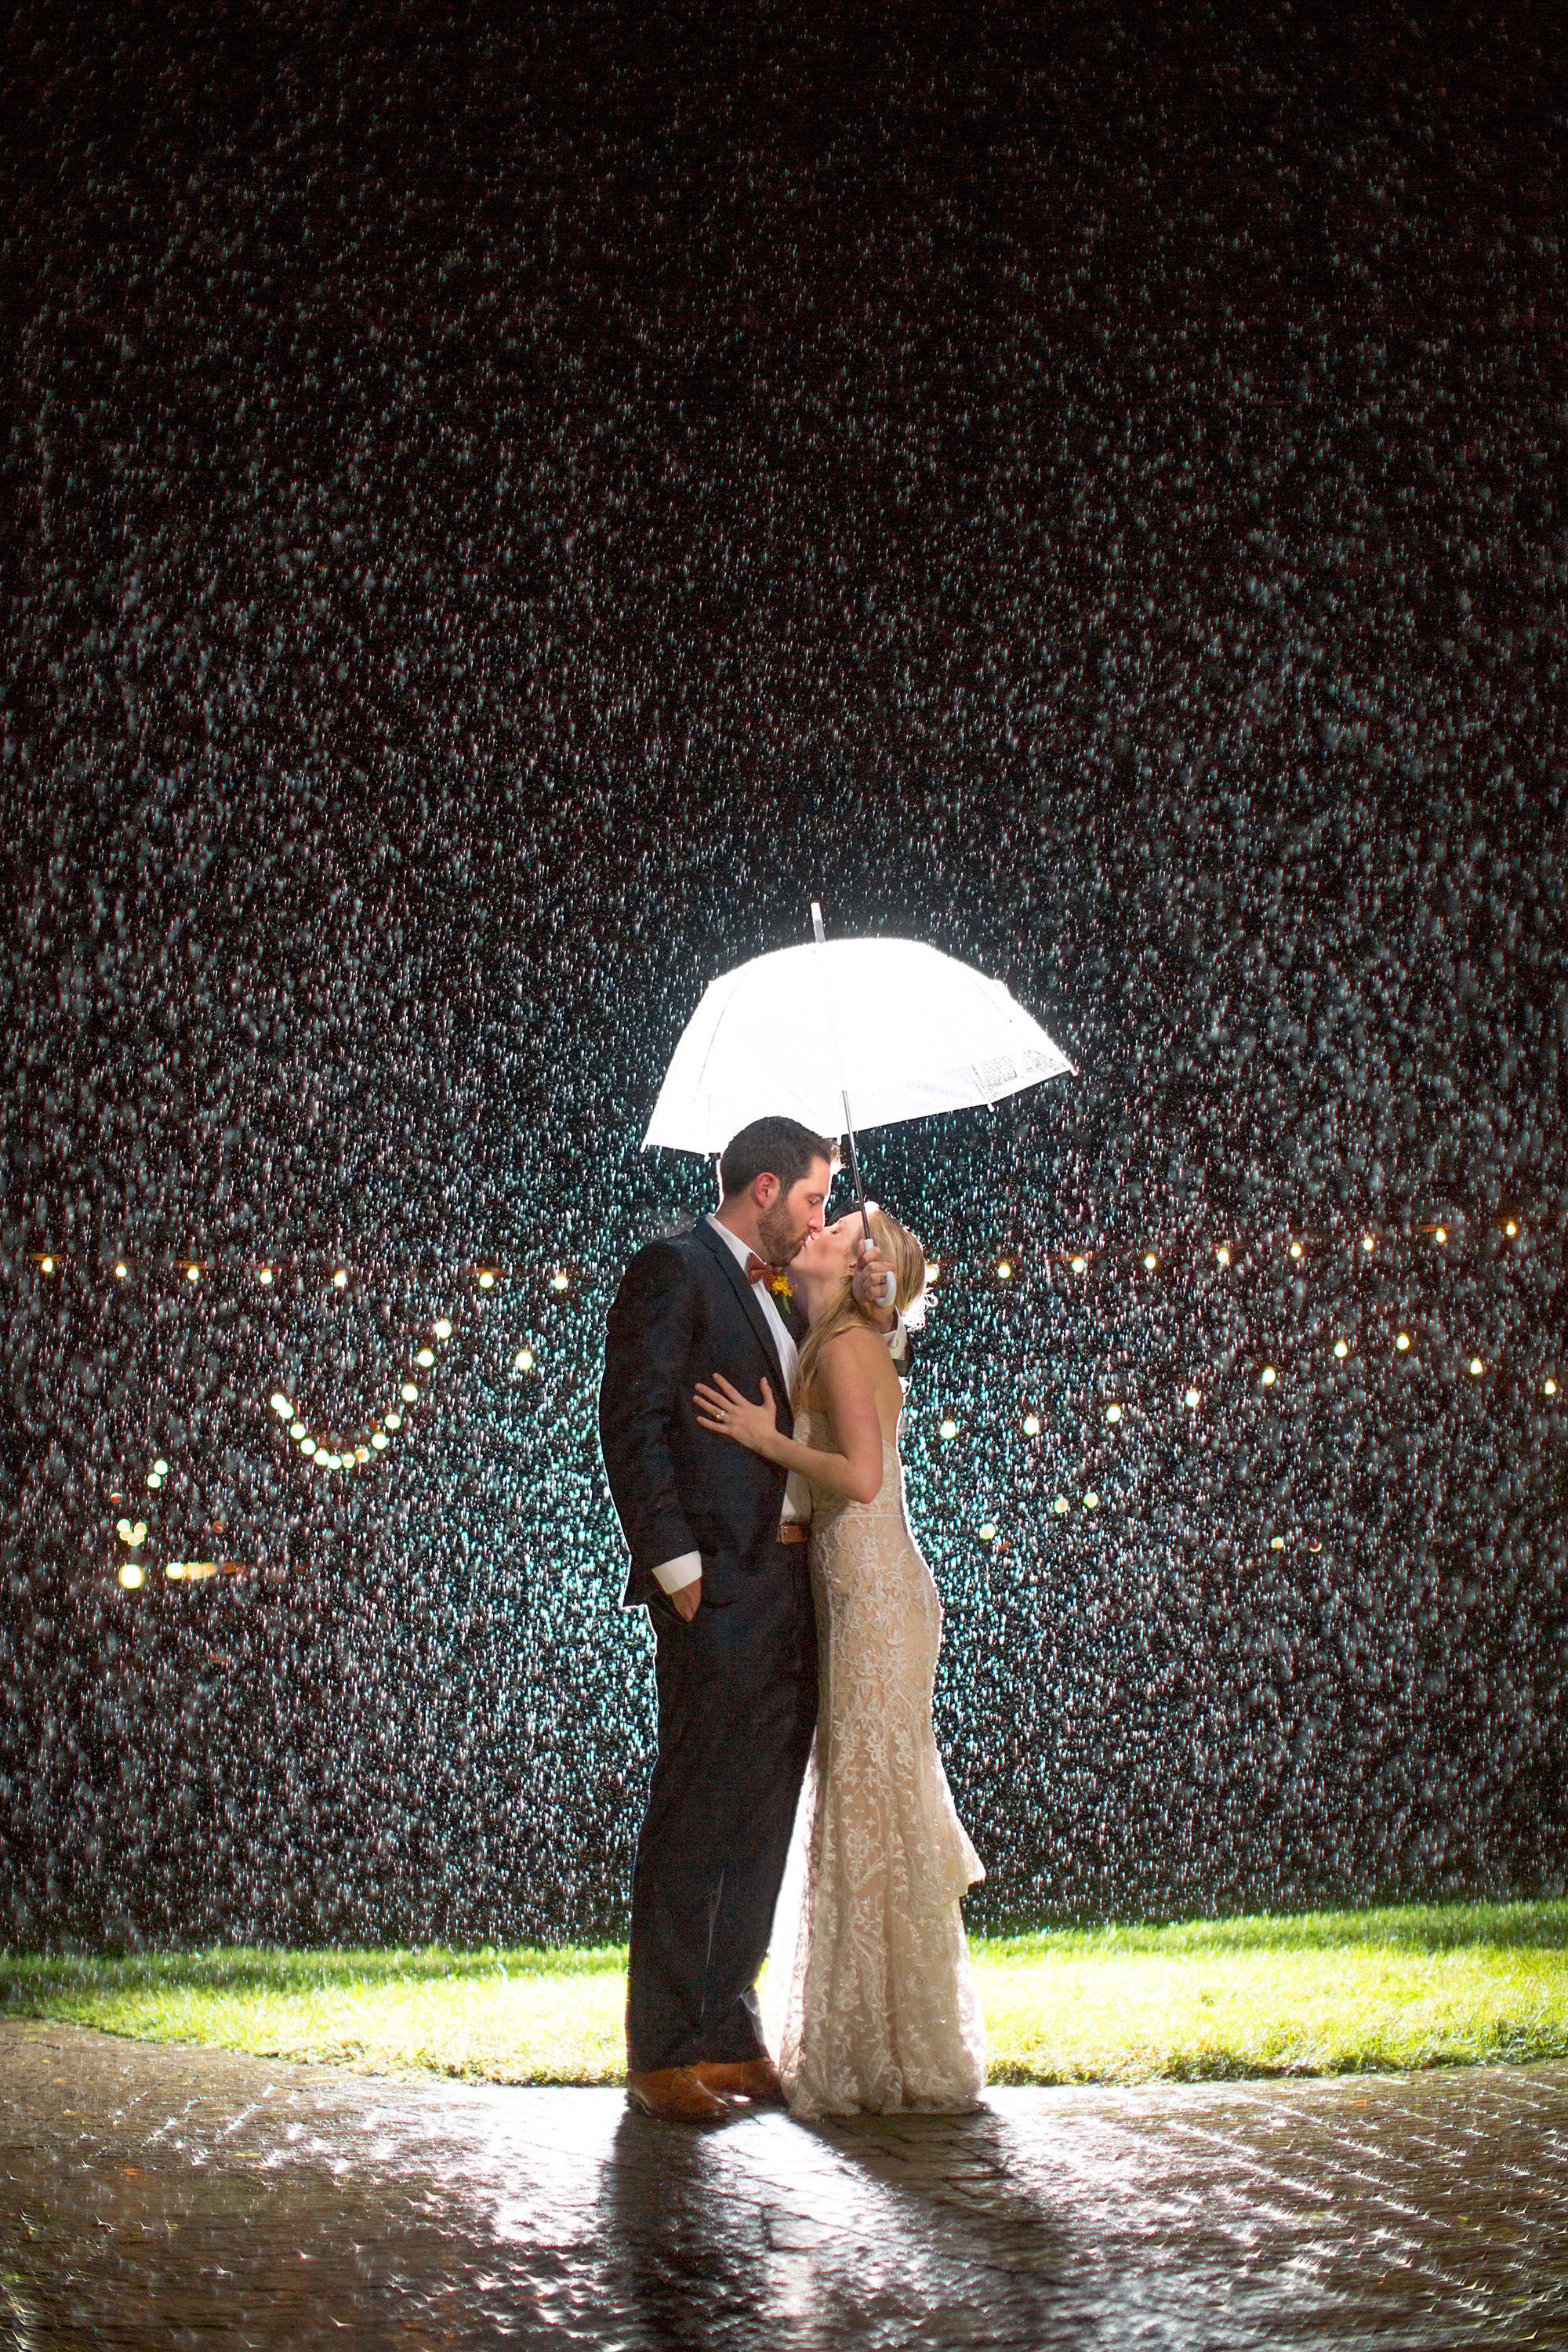 """I love this photo. And it's gone a bit """"viral"""" sure. But what excites me about this photo is the couple. I remember talking to them during our consultation about chipotle and the redskins. I look at this image and think about how willing they were to let me try something different and how awesome they were about the torrential downpour on their wedding day."""